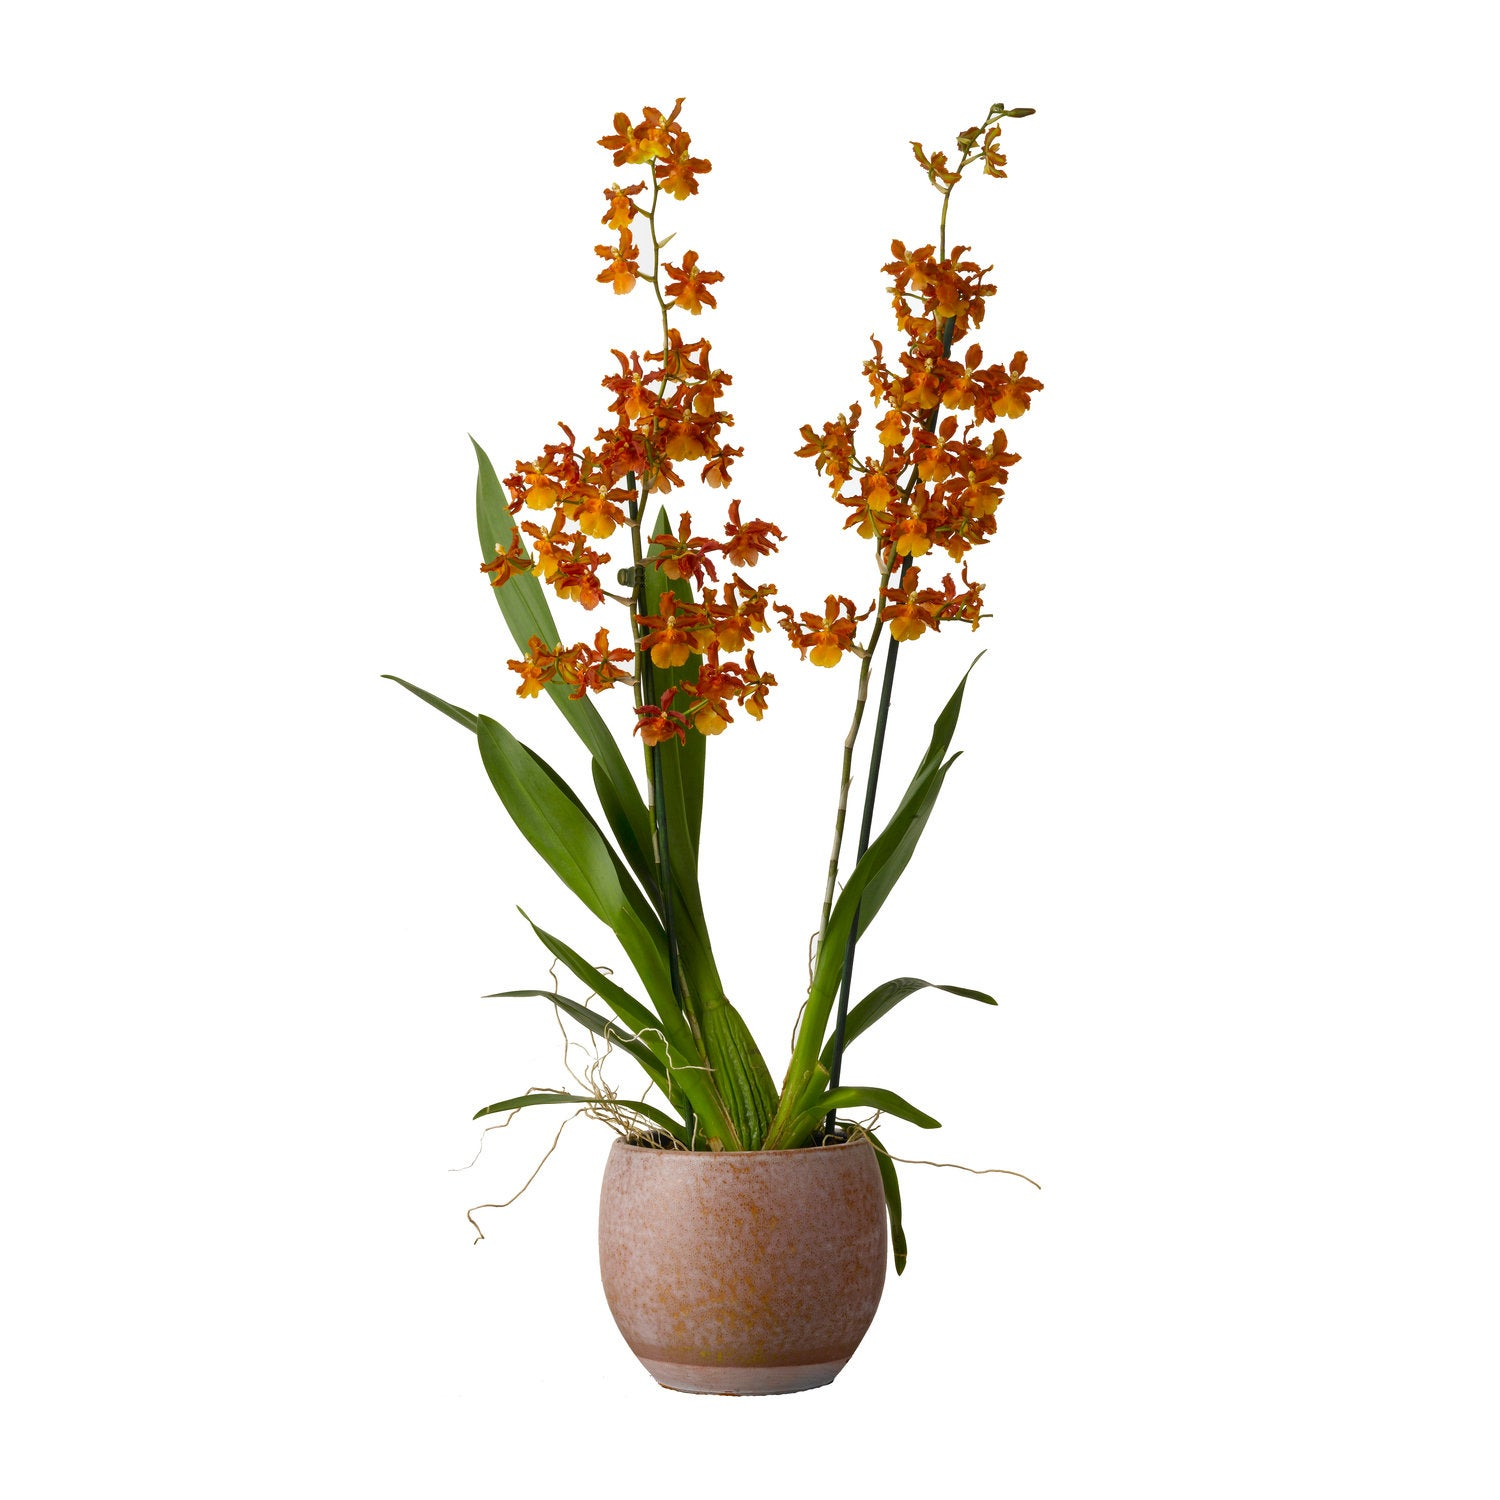 Cambria-orchidee (Cambria 'Catatante') D 12 H 30 cm